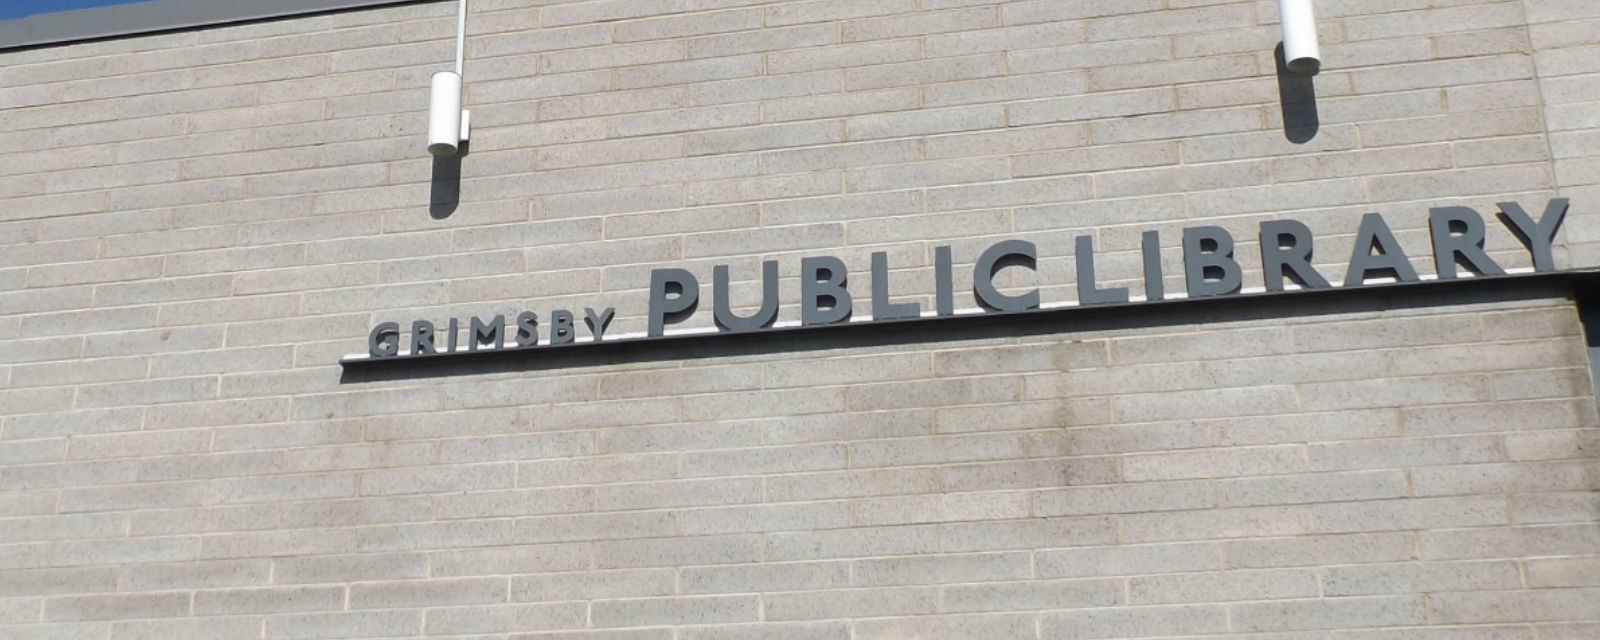 Sign on side of Grimsby Public Library building